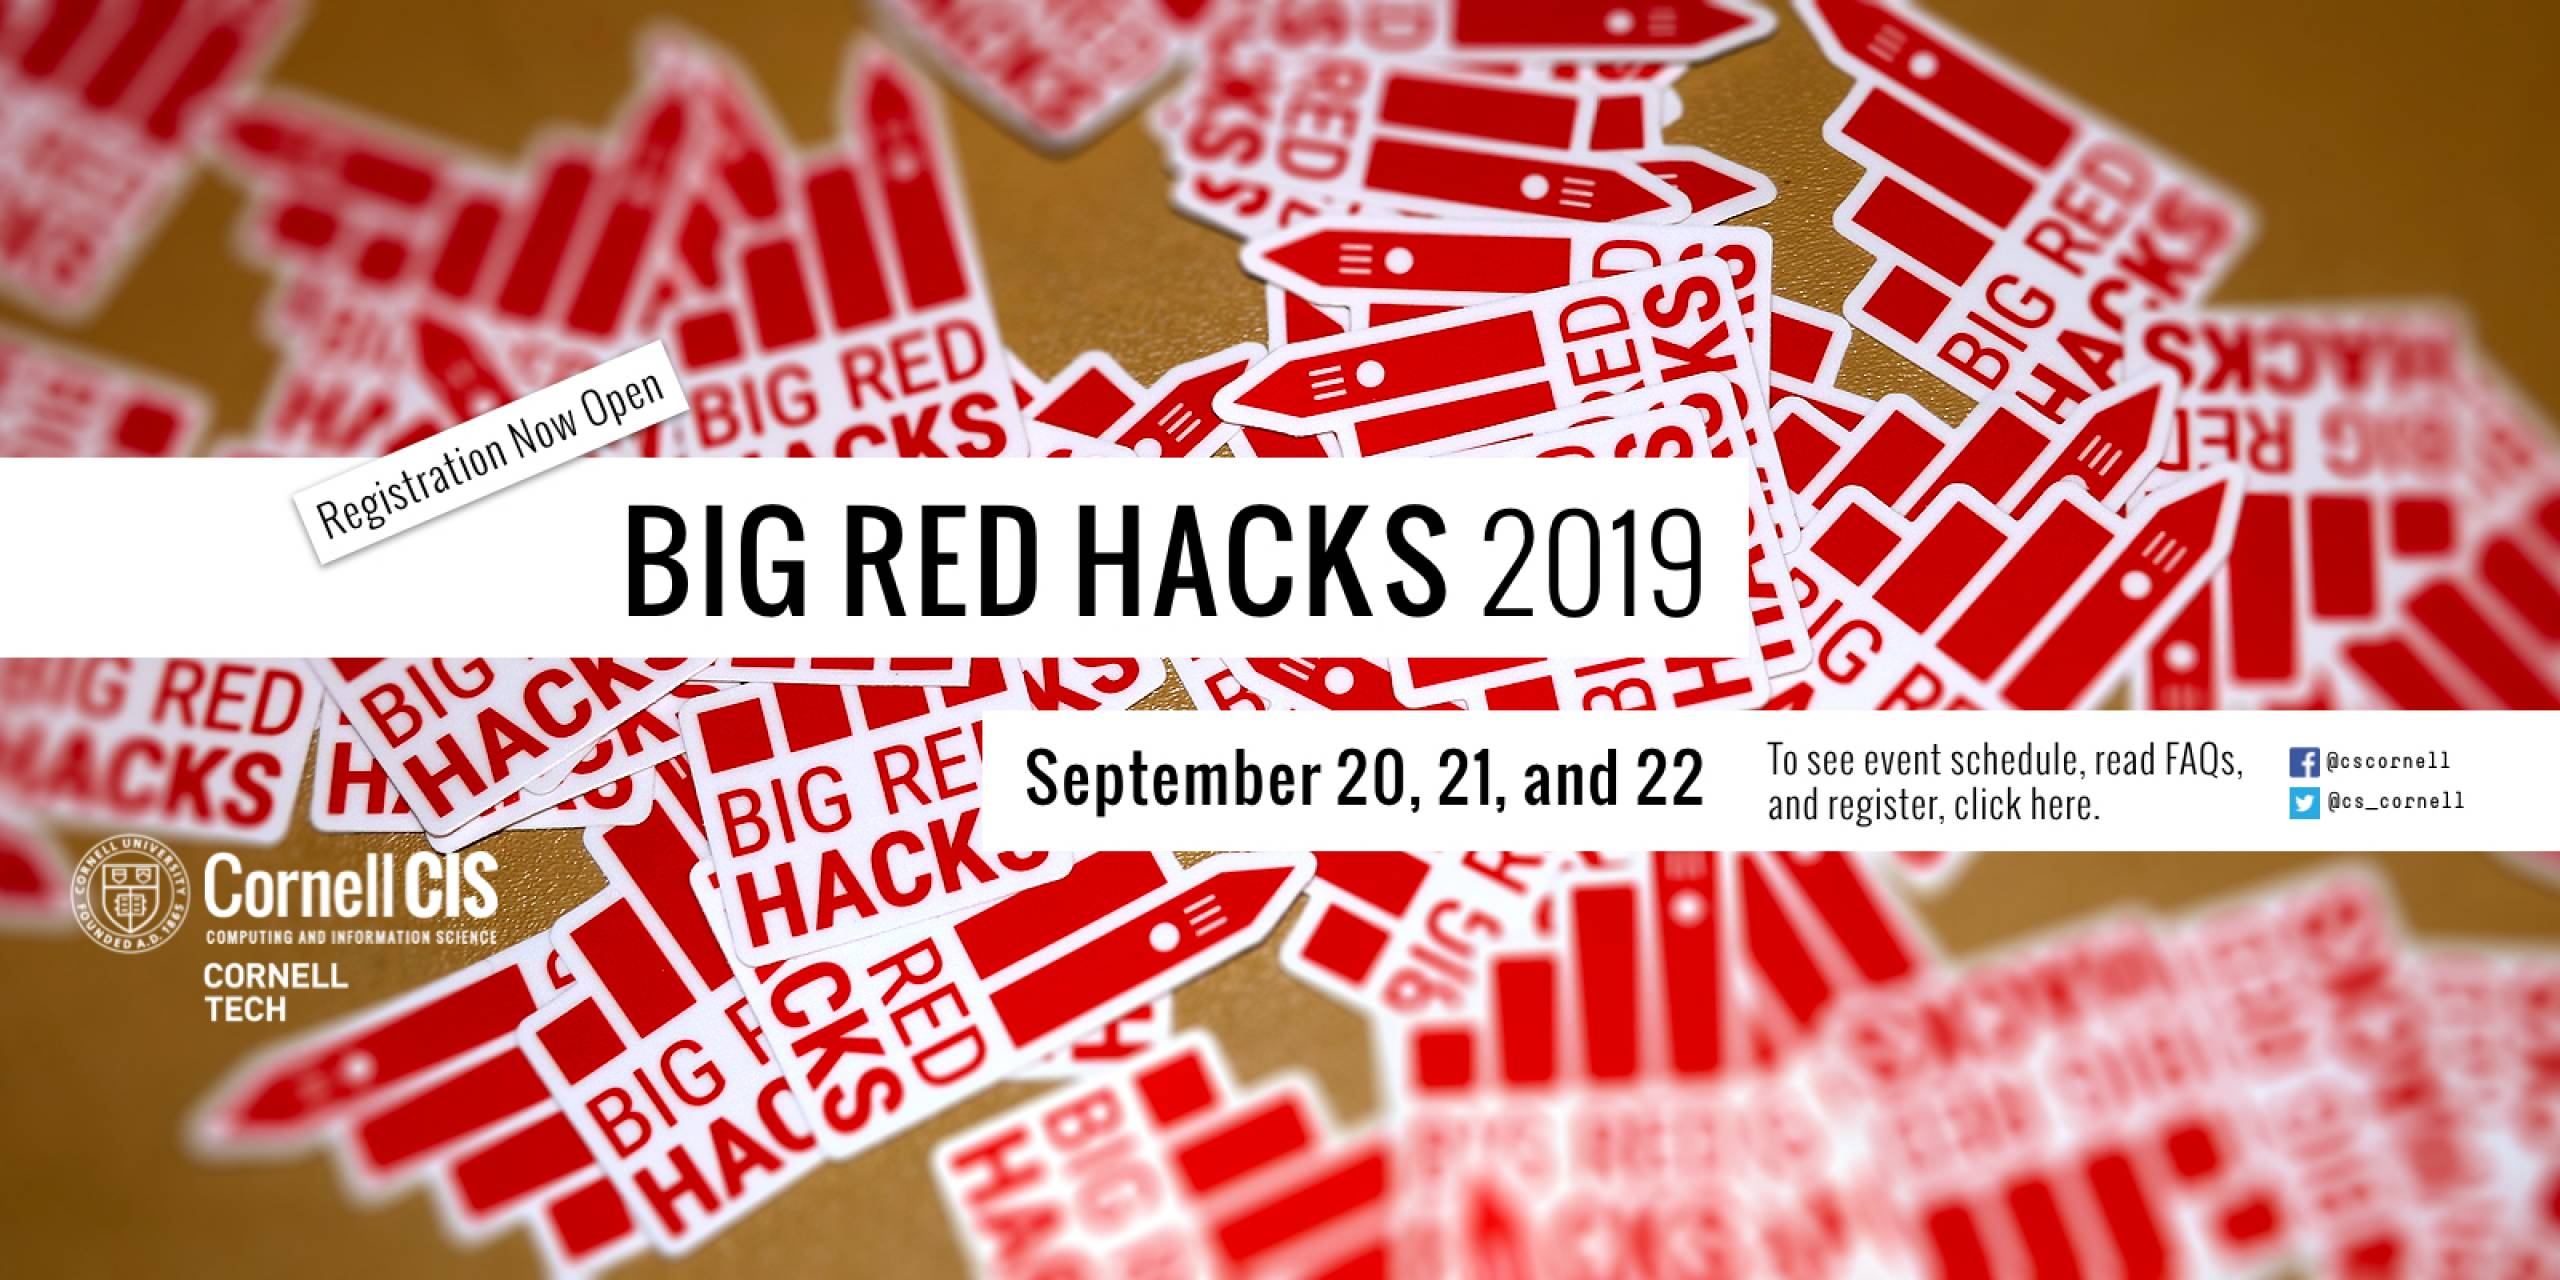 Big Red Hacks 2019